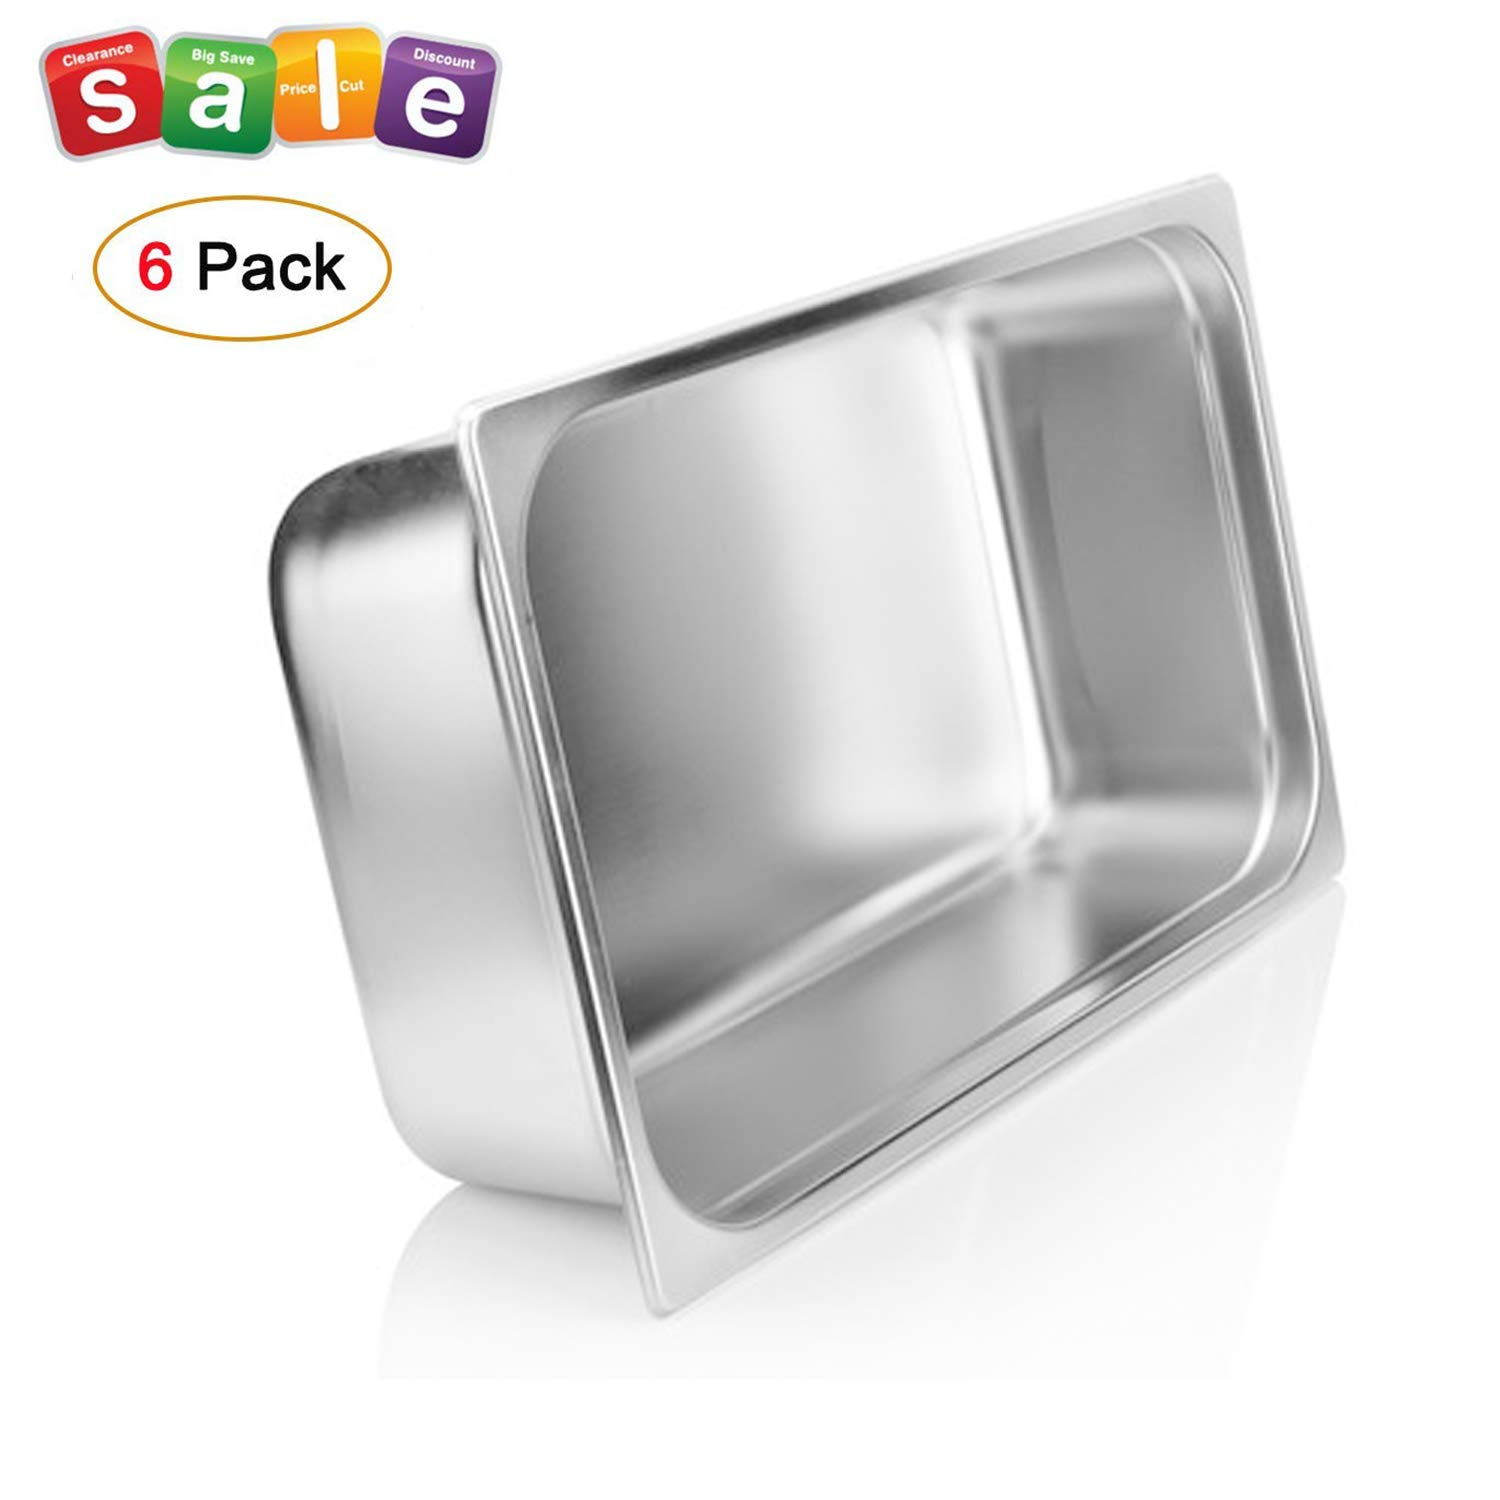 """4"""" Deep Steam Table Pan Full Size,Kitma 14 Quart Stainless Steel Anti-Jam Standard Weight Hotel GN Food Pans - NSF (20.87""""L x 12.8""""W)- 6 Pack"""